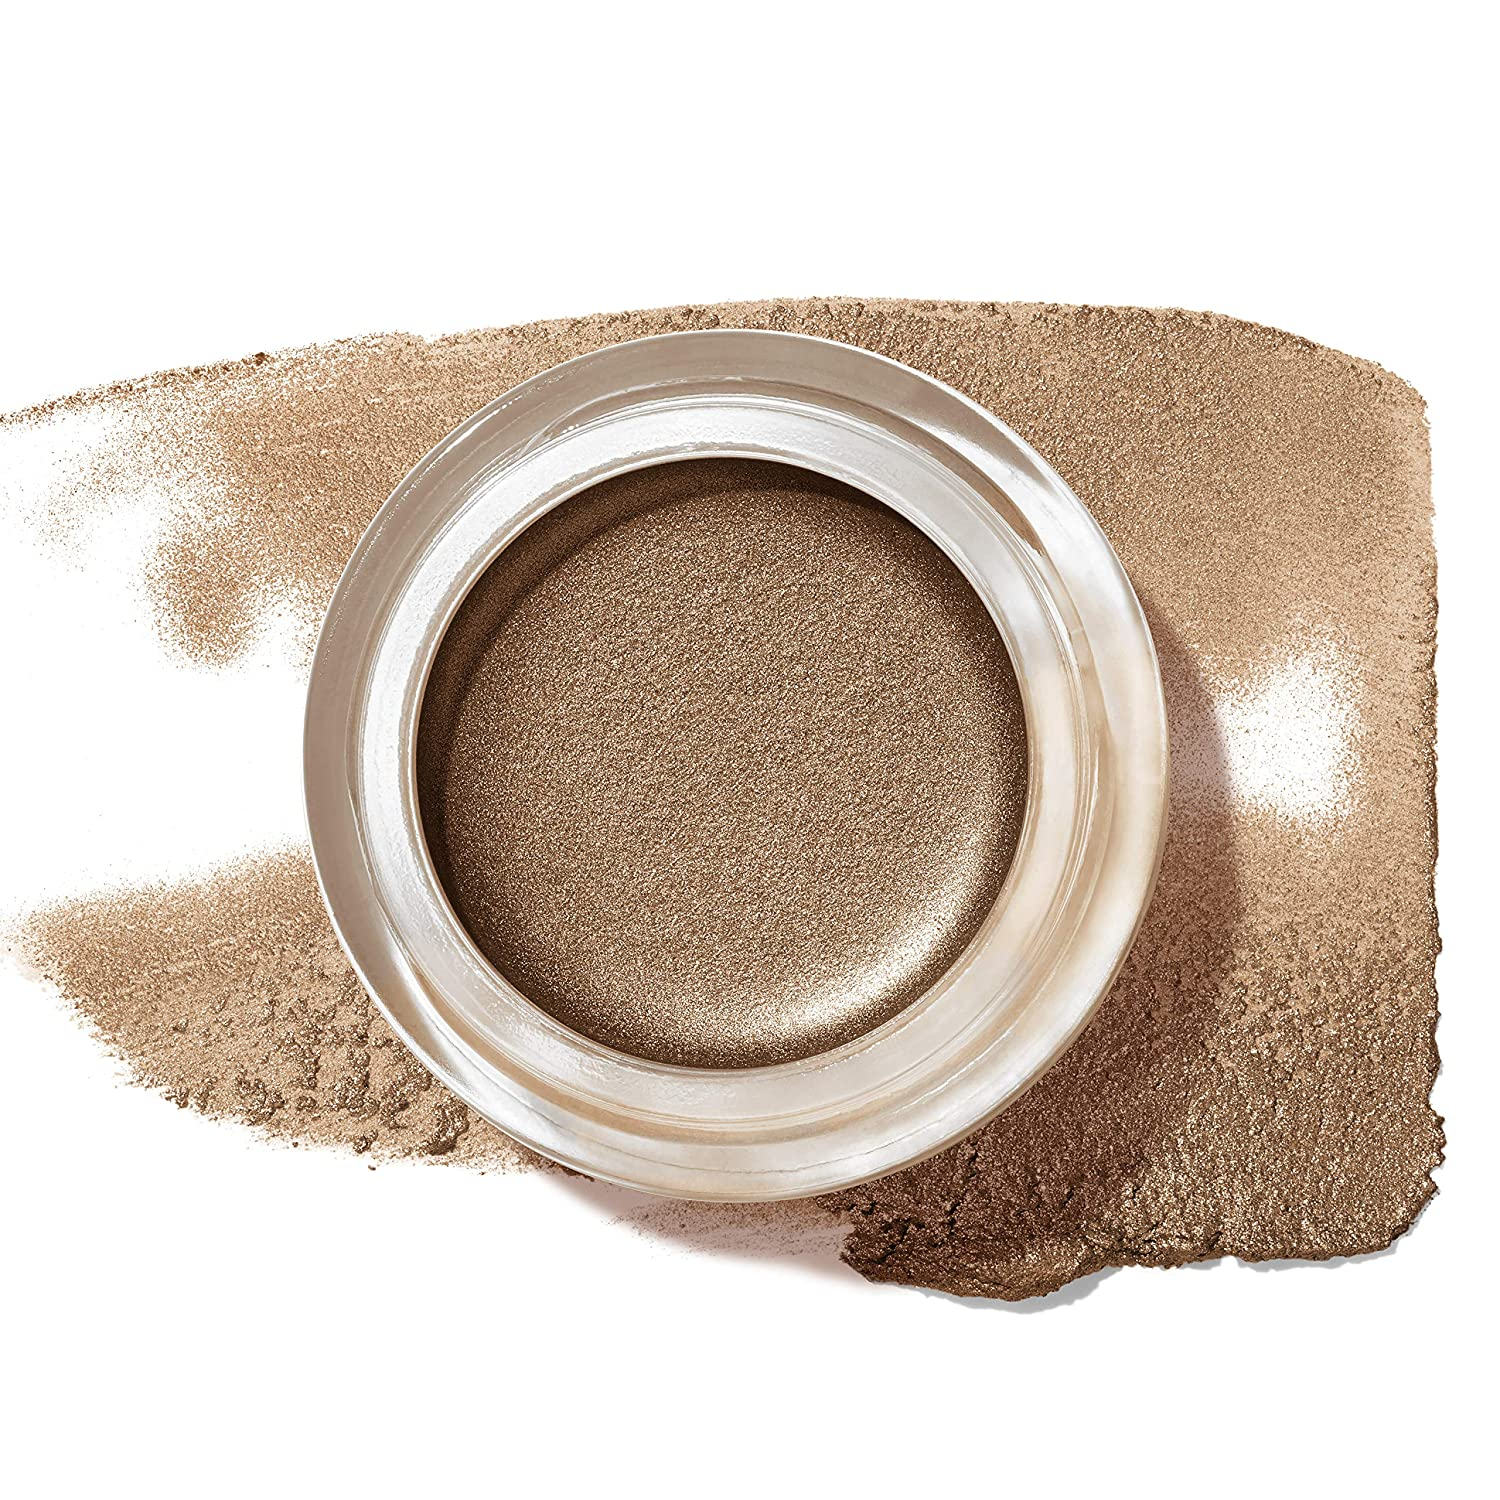 Revlon Colorstay Creme Eye Shadow, Longwear Blendable Matte or Shimmer Eye Makeup with Applicator Brush in Bronze Brown, Caramel (710) : Beauty & Personal Care